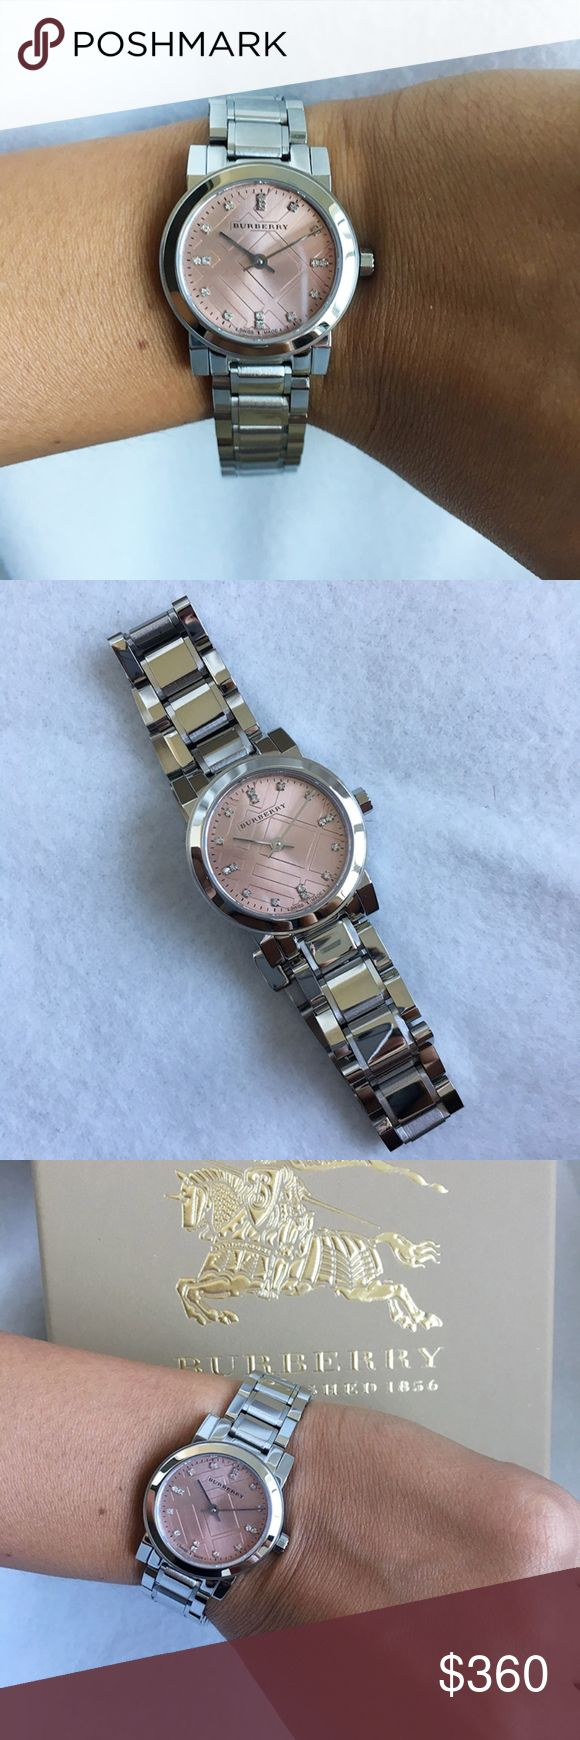 New & Authentic Burberry Women's Watch BU9223 100% Brand New and Authentic in the original Burberry Box. Fast Shipping, shipped same business day.  Brand Name: Burberry Model number: BU9223 Item Shape: Round Gender: Women's Case material: Stainless Steel Case color: Silver Case Size: 26 millimeters Case Thickness: 7 millimeters Band width: 20 millimeters Band material: Stainless Steel Band color: Silver Dial color: Pink (16 diamonds) Movement: Quartz Water resistant depth: 165 feet Burberry